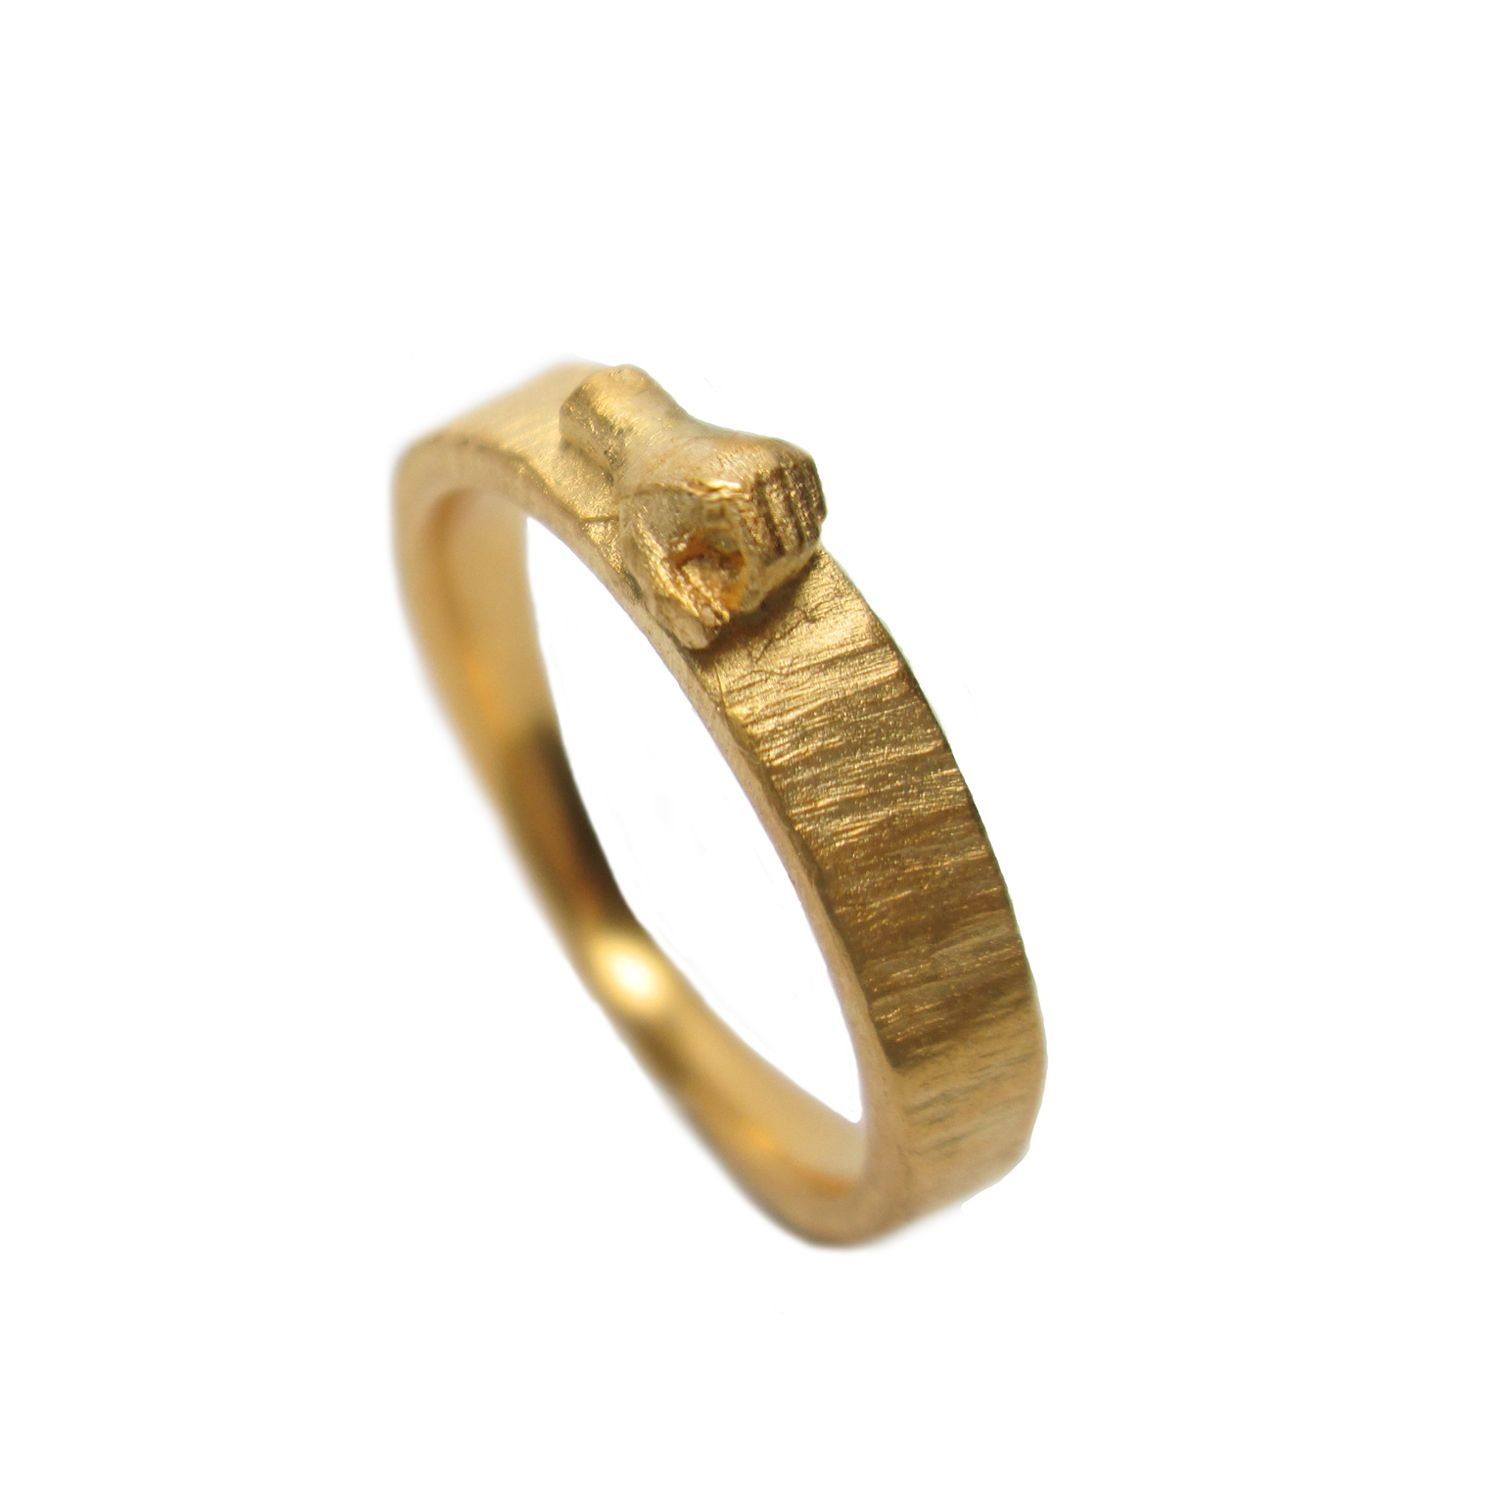 Hand Ring Gold | Ring, Fashion jewellery and Gold